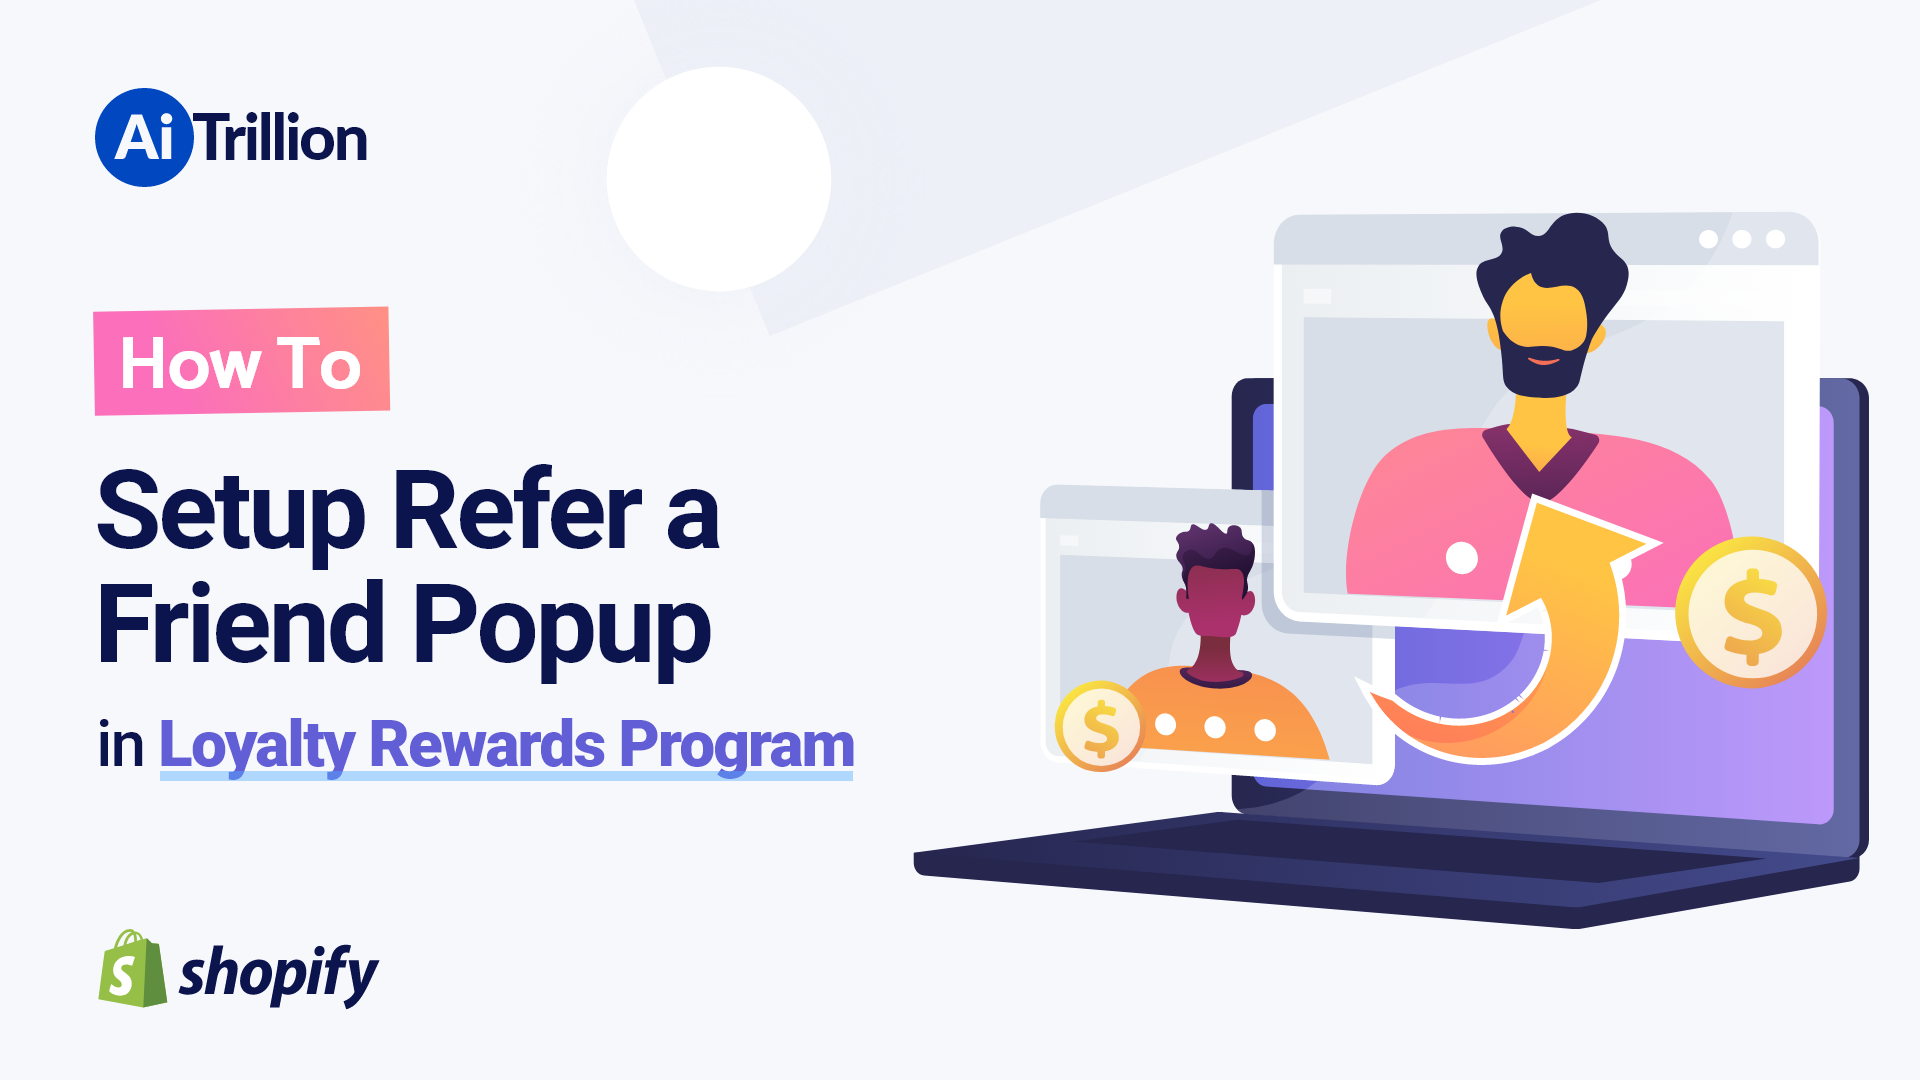 How To Setup Refer a Friend Popup in Loyalty Rewards Program